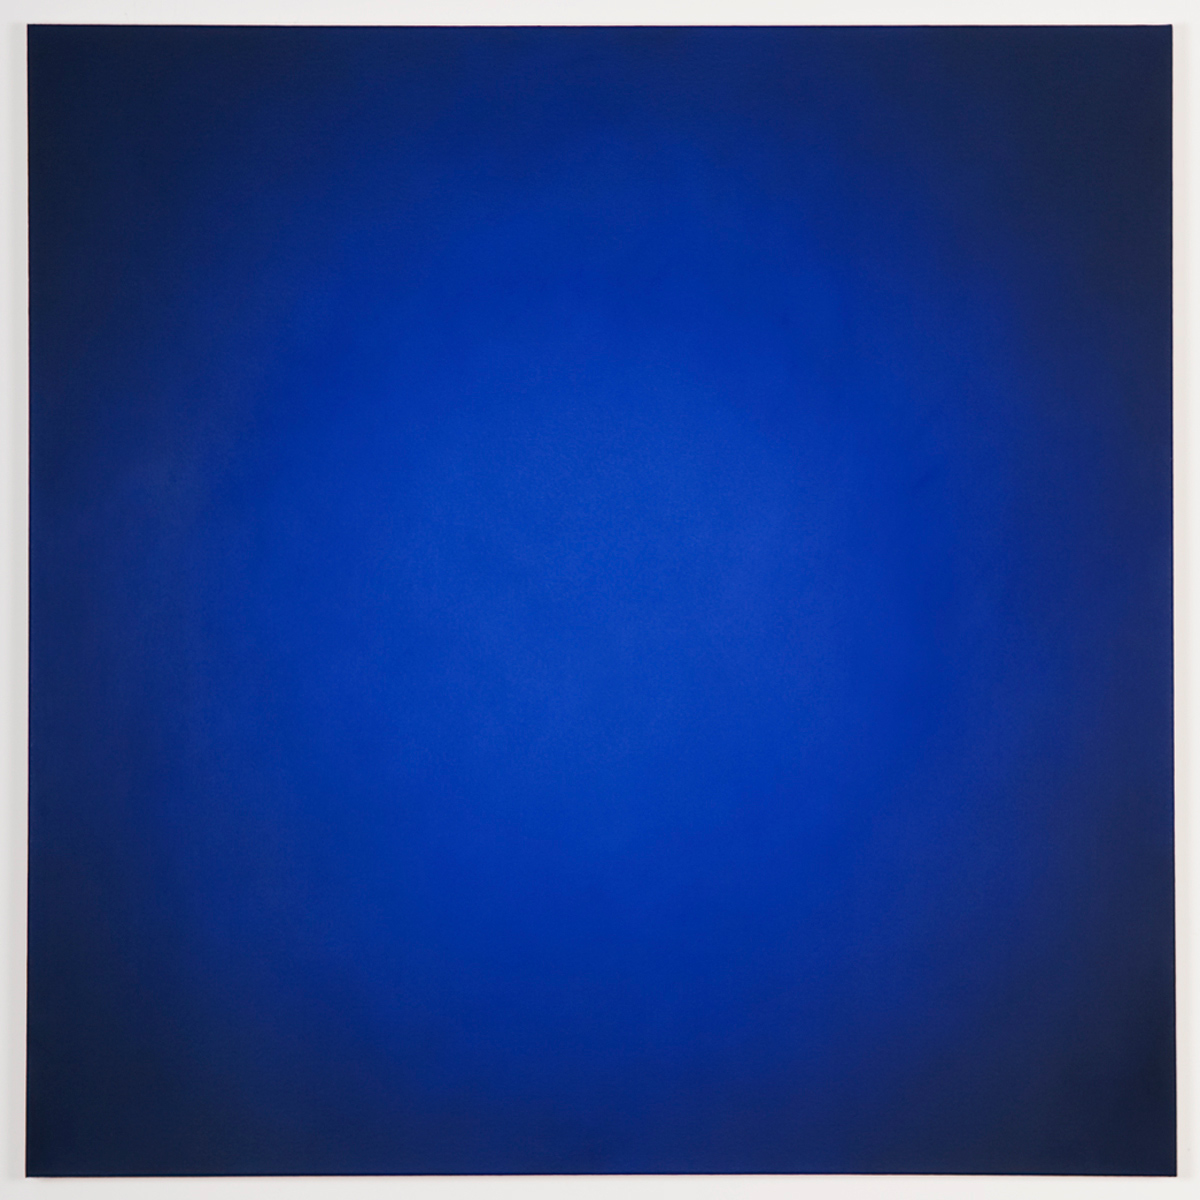 Helio (Blue Orange), Primary Red Blue Series, 2008, oil on canvas, 48 x 48 in. (122 x 122 cm.)